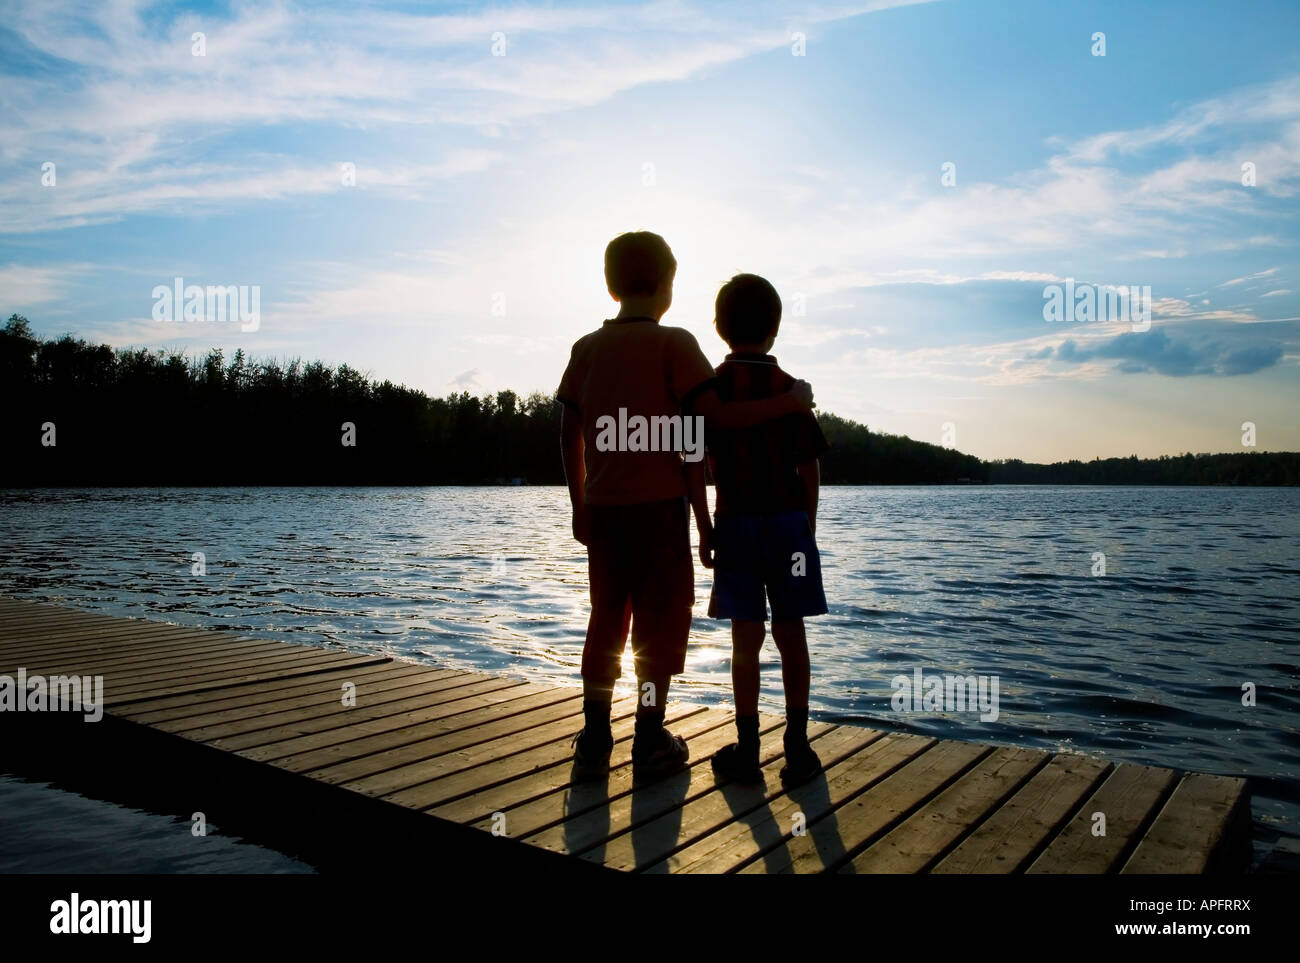 Silhouette of children on a dock - Stock Image